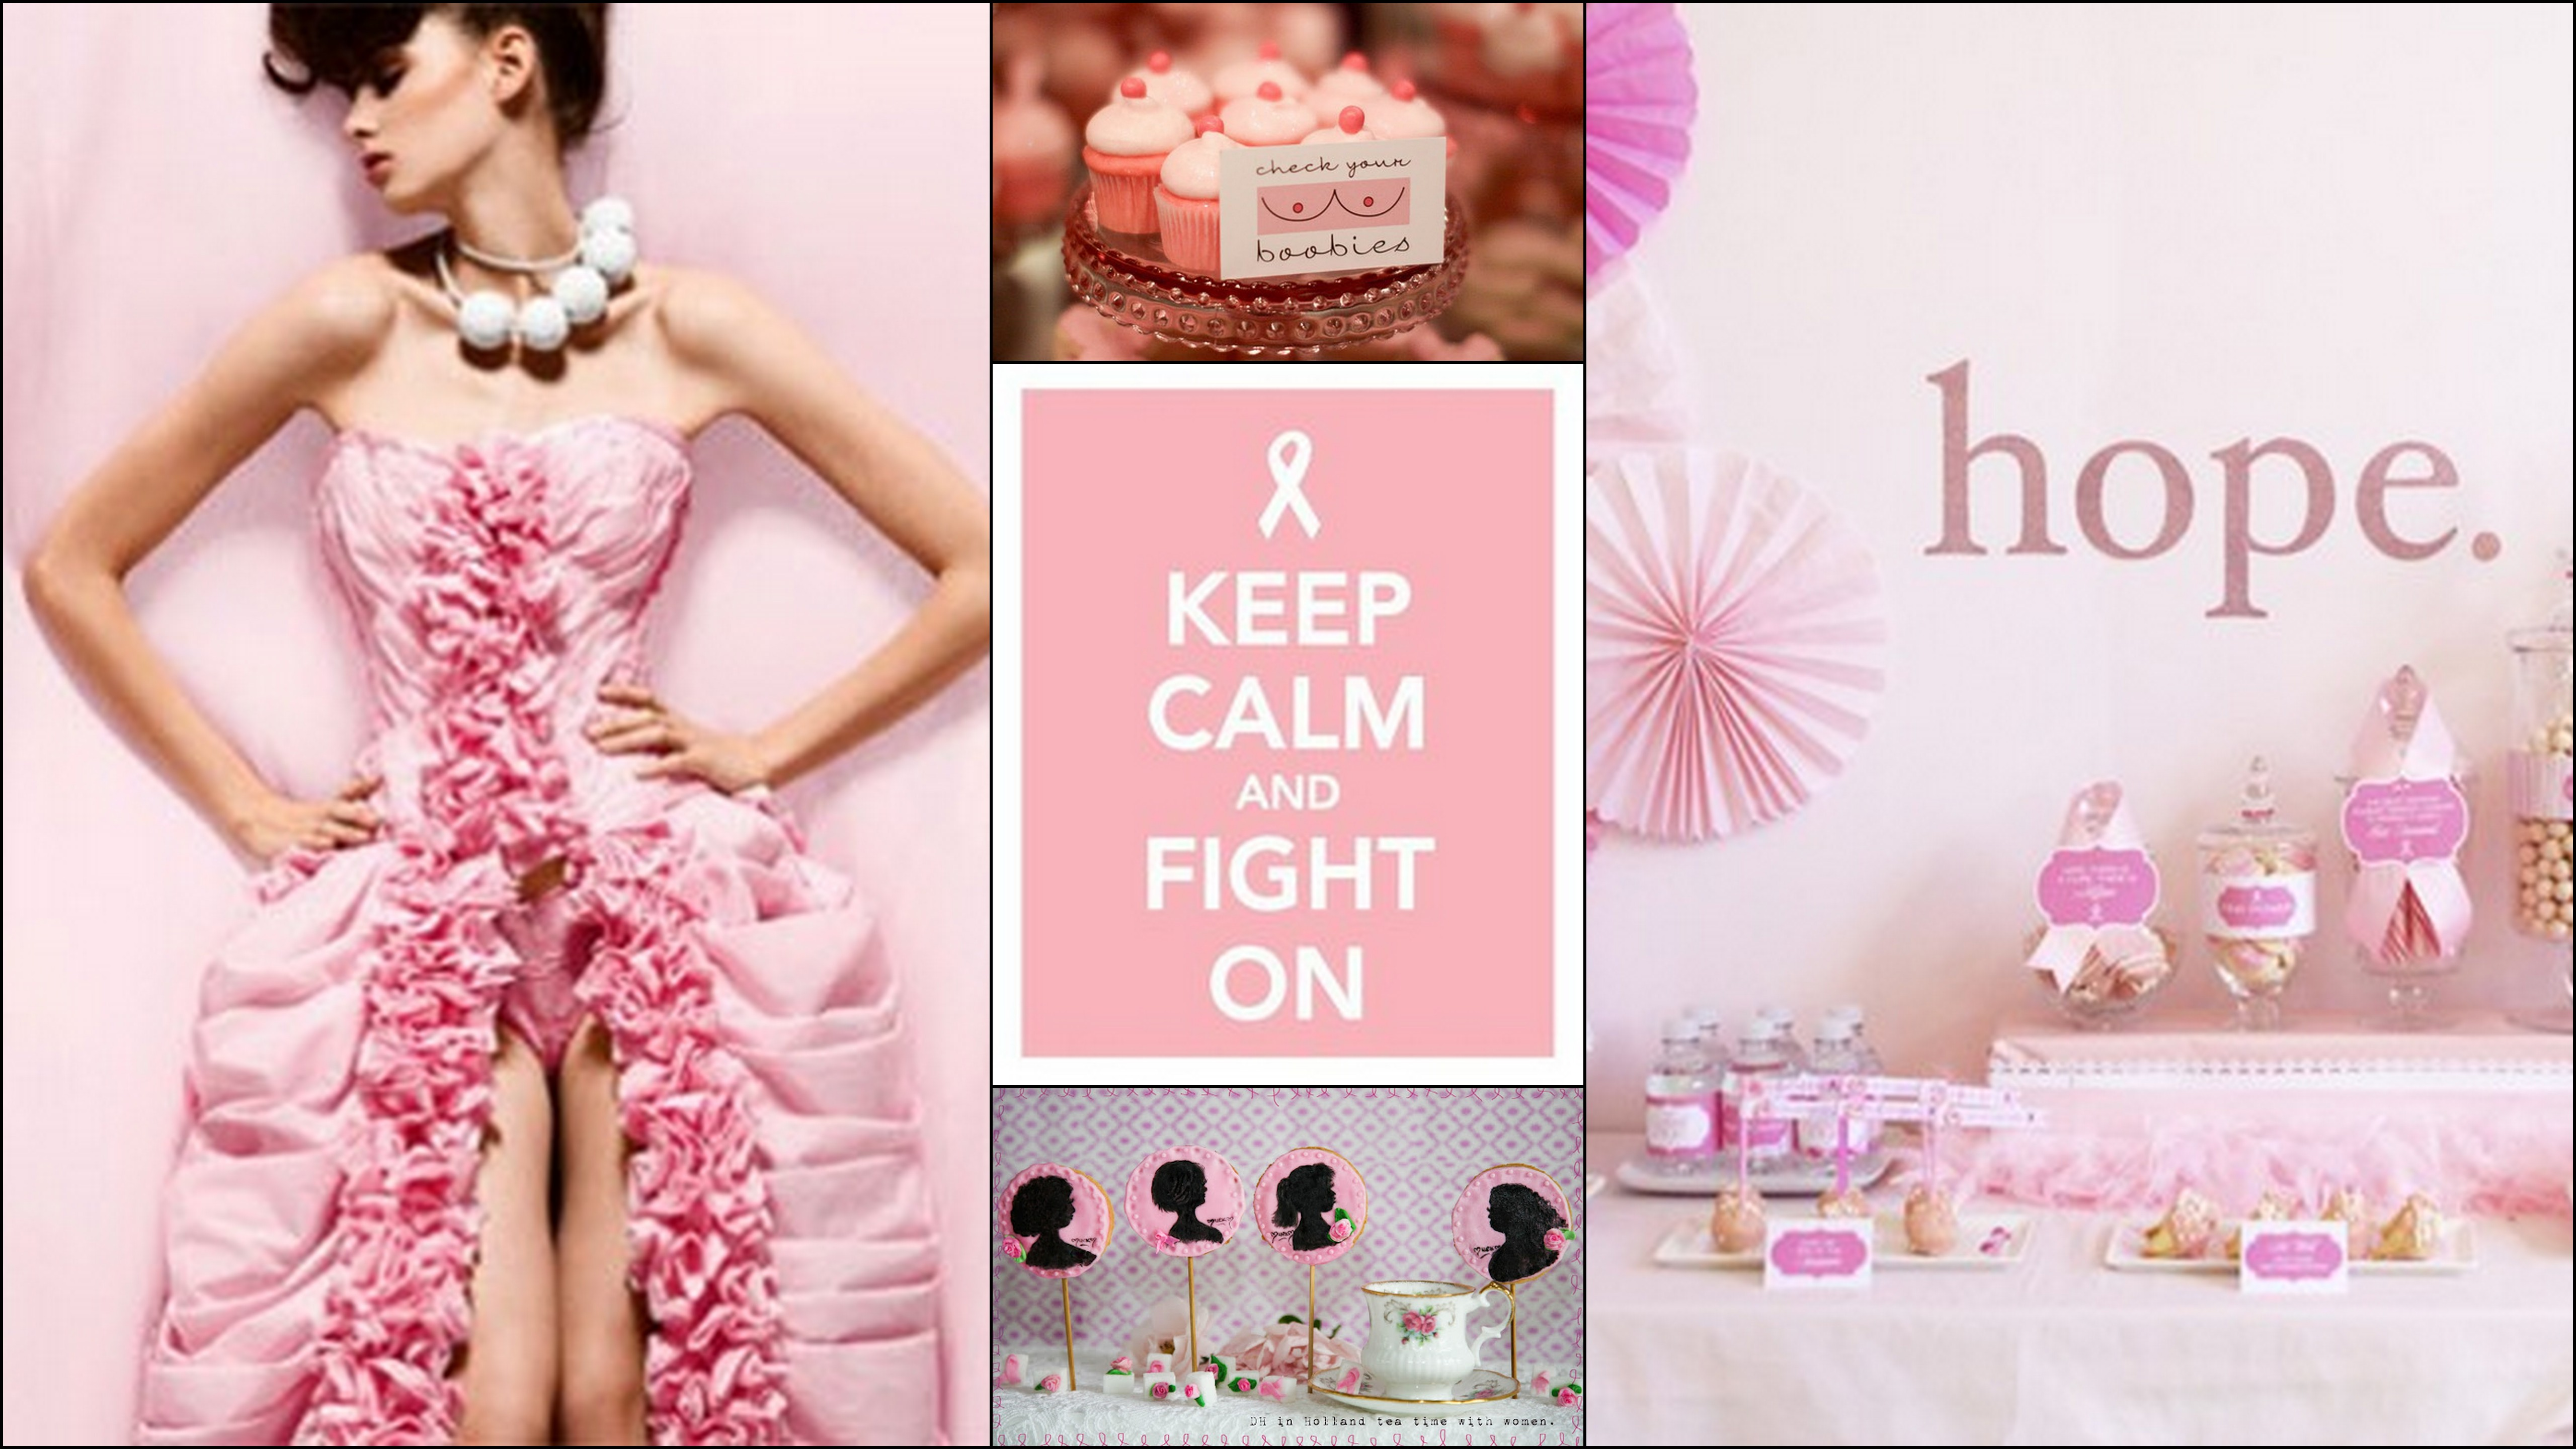 Against the breast cancer 10